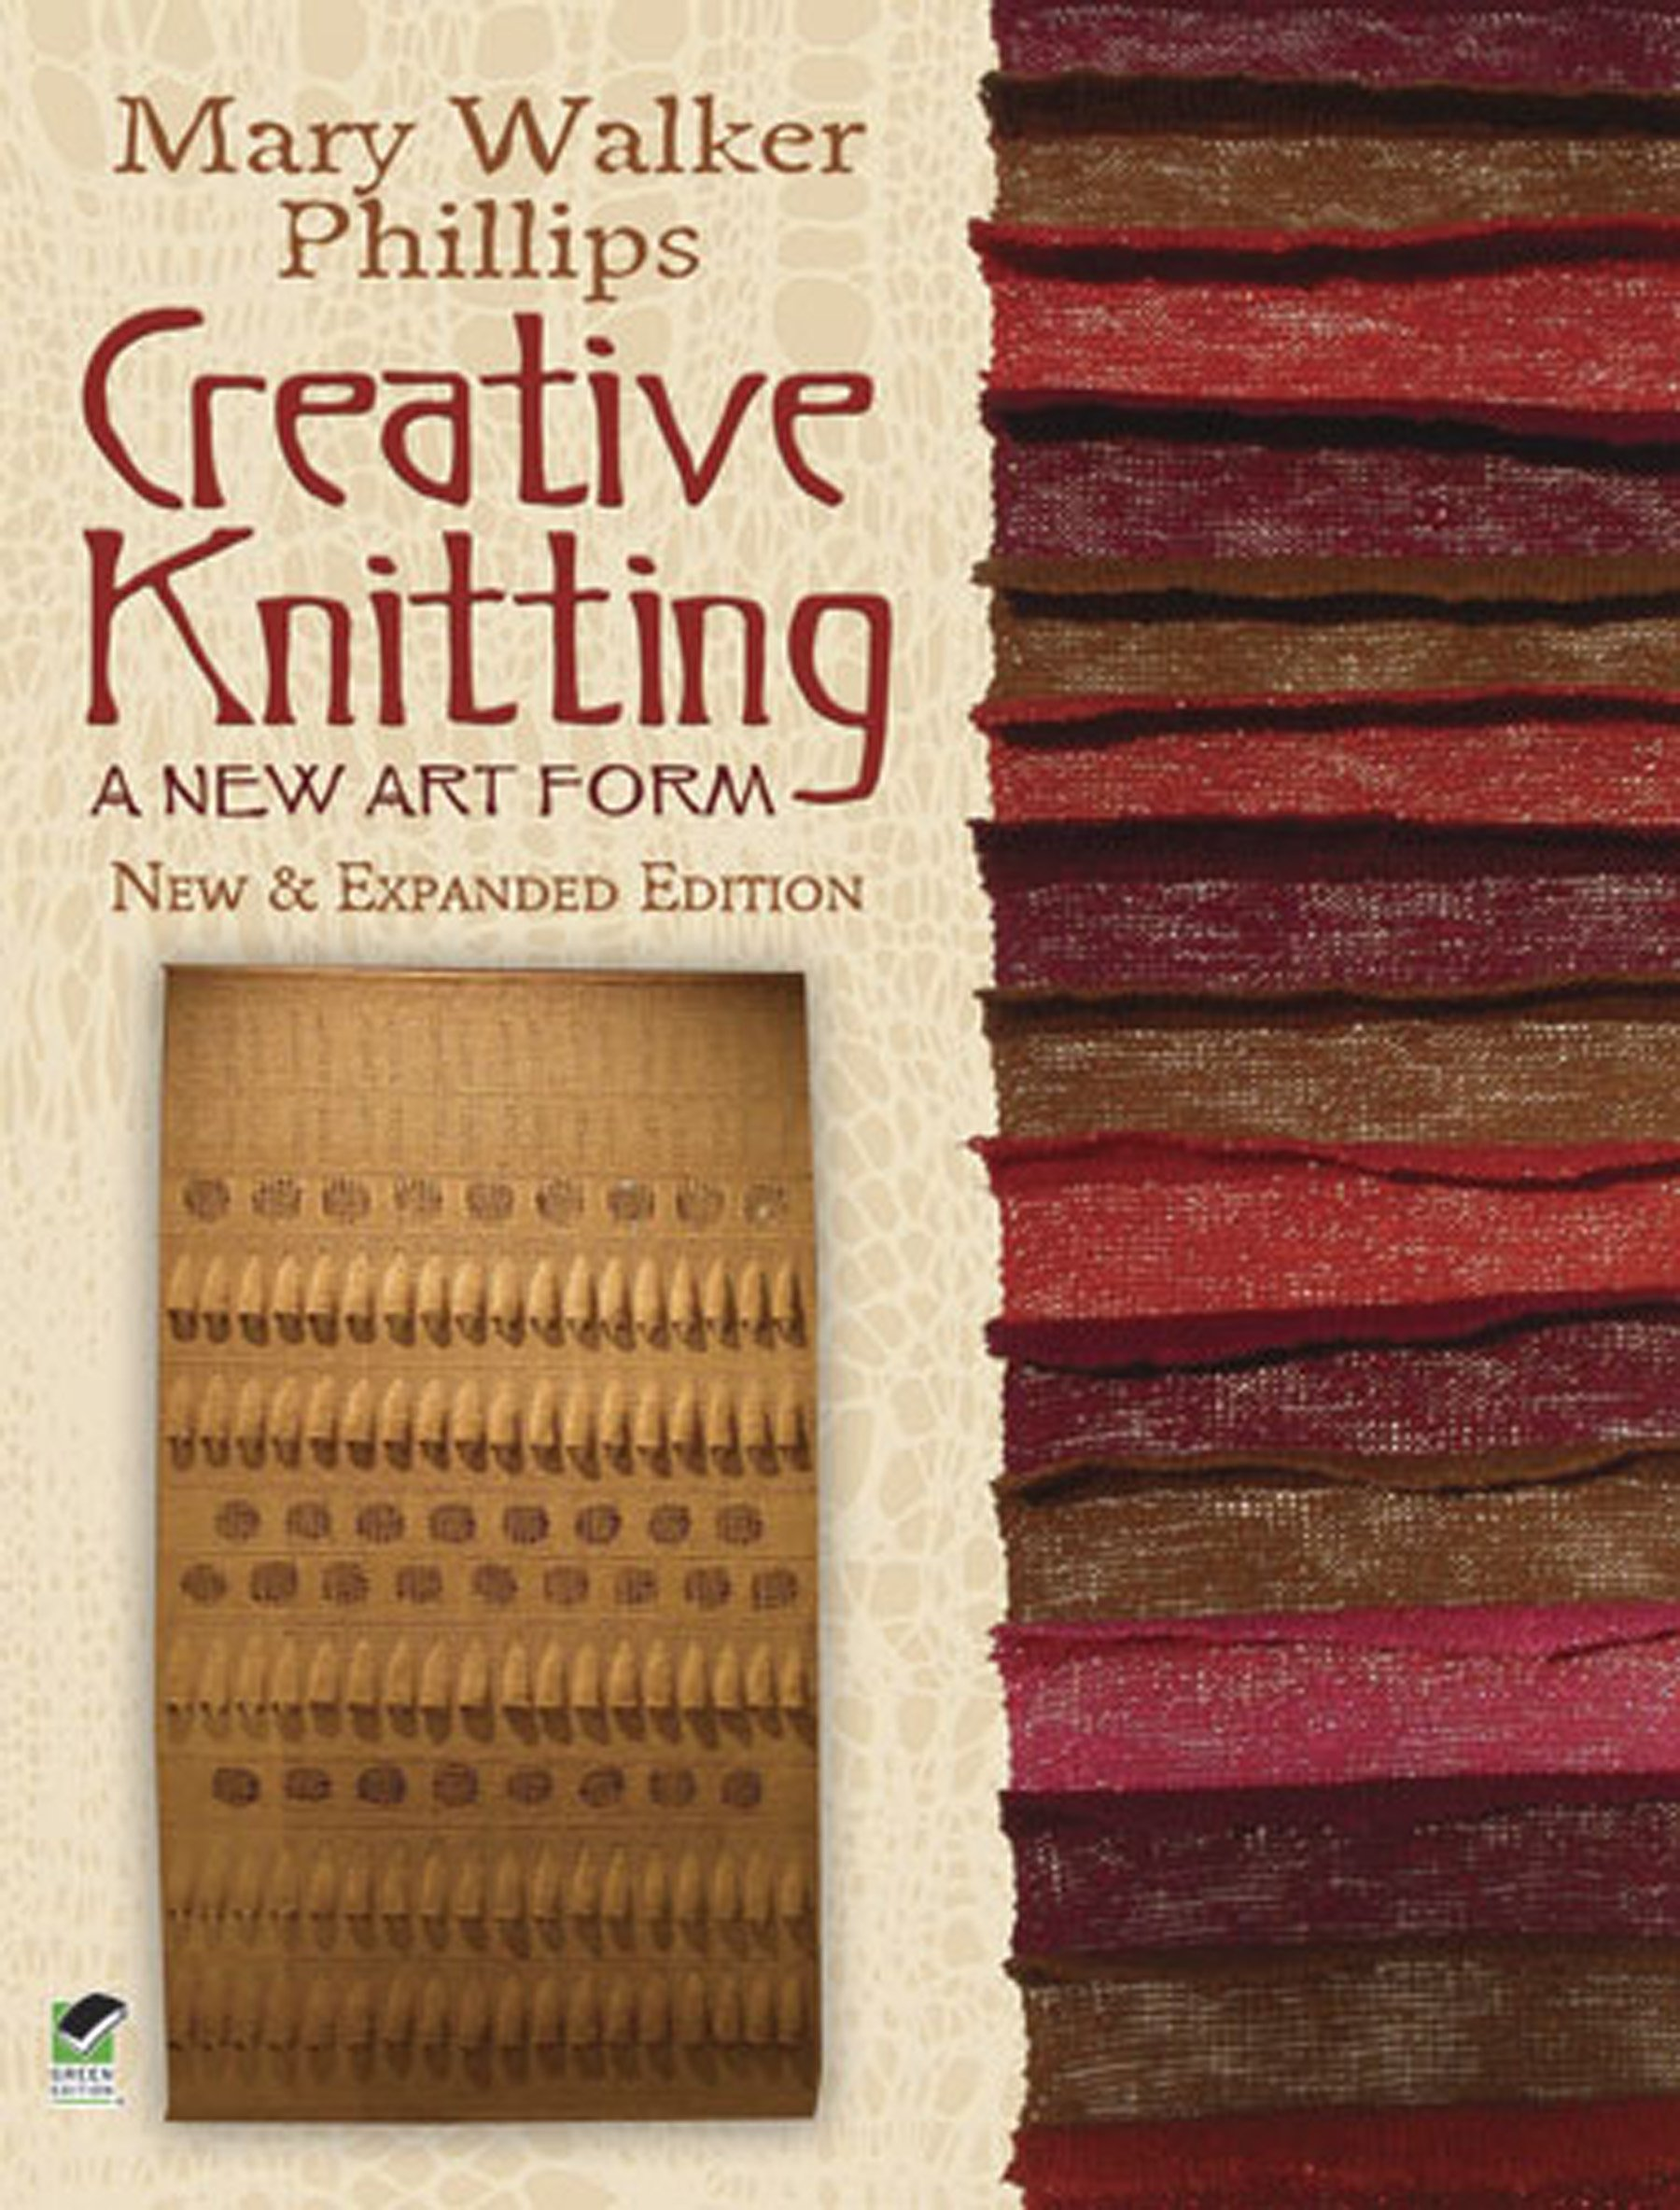 How To Make A Knitted Book Cover ~ Creative knitting a new art form new expanded edition dover